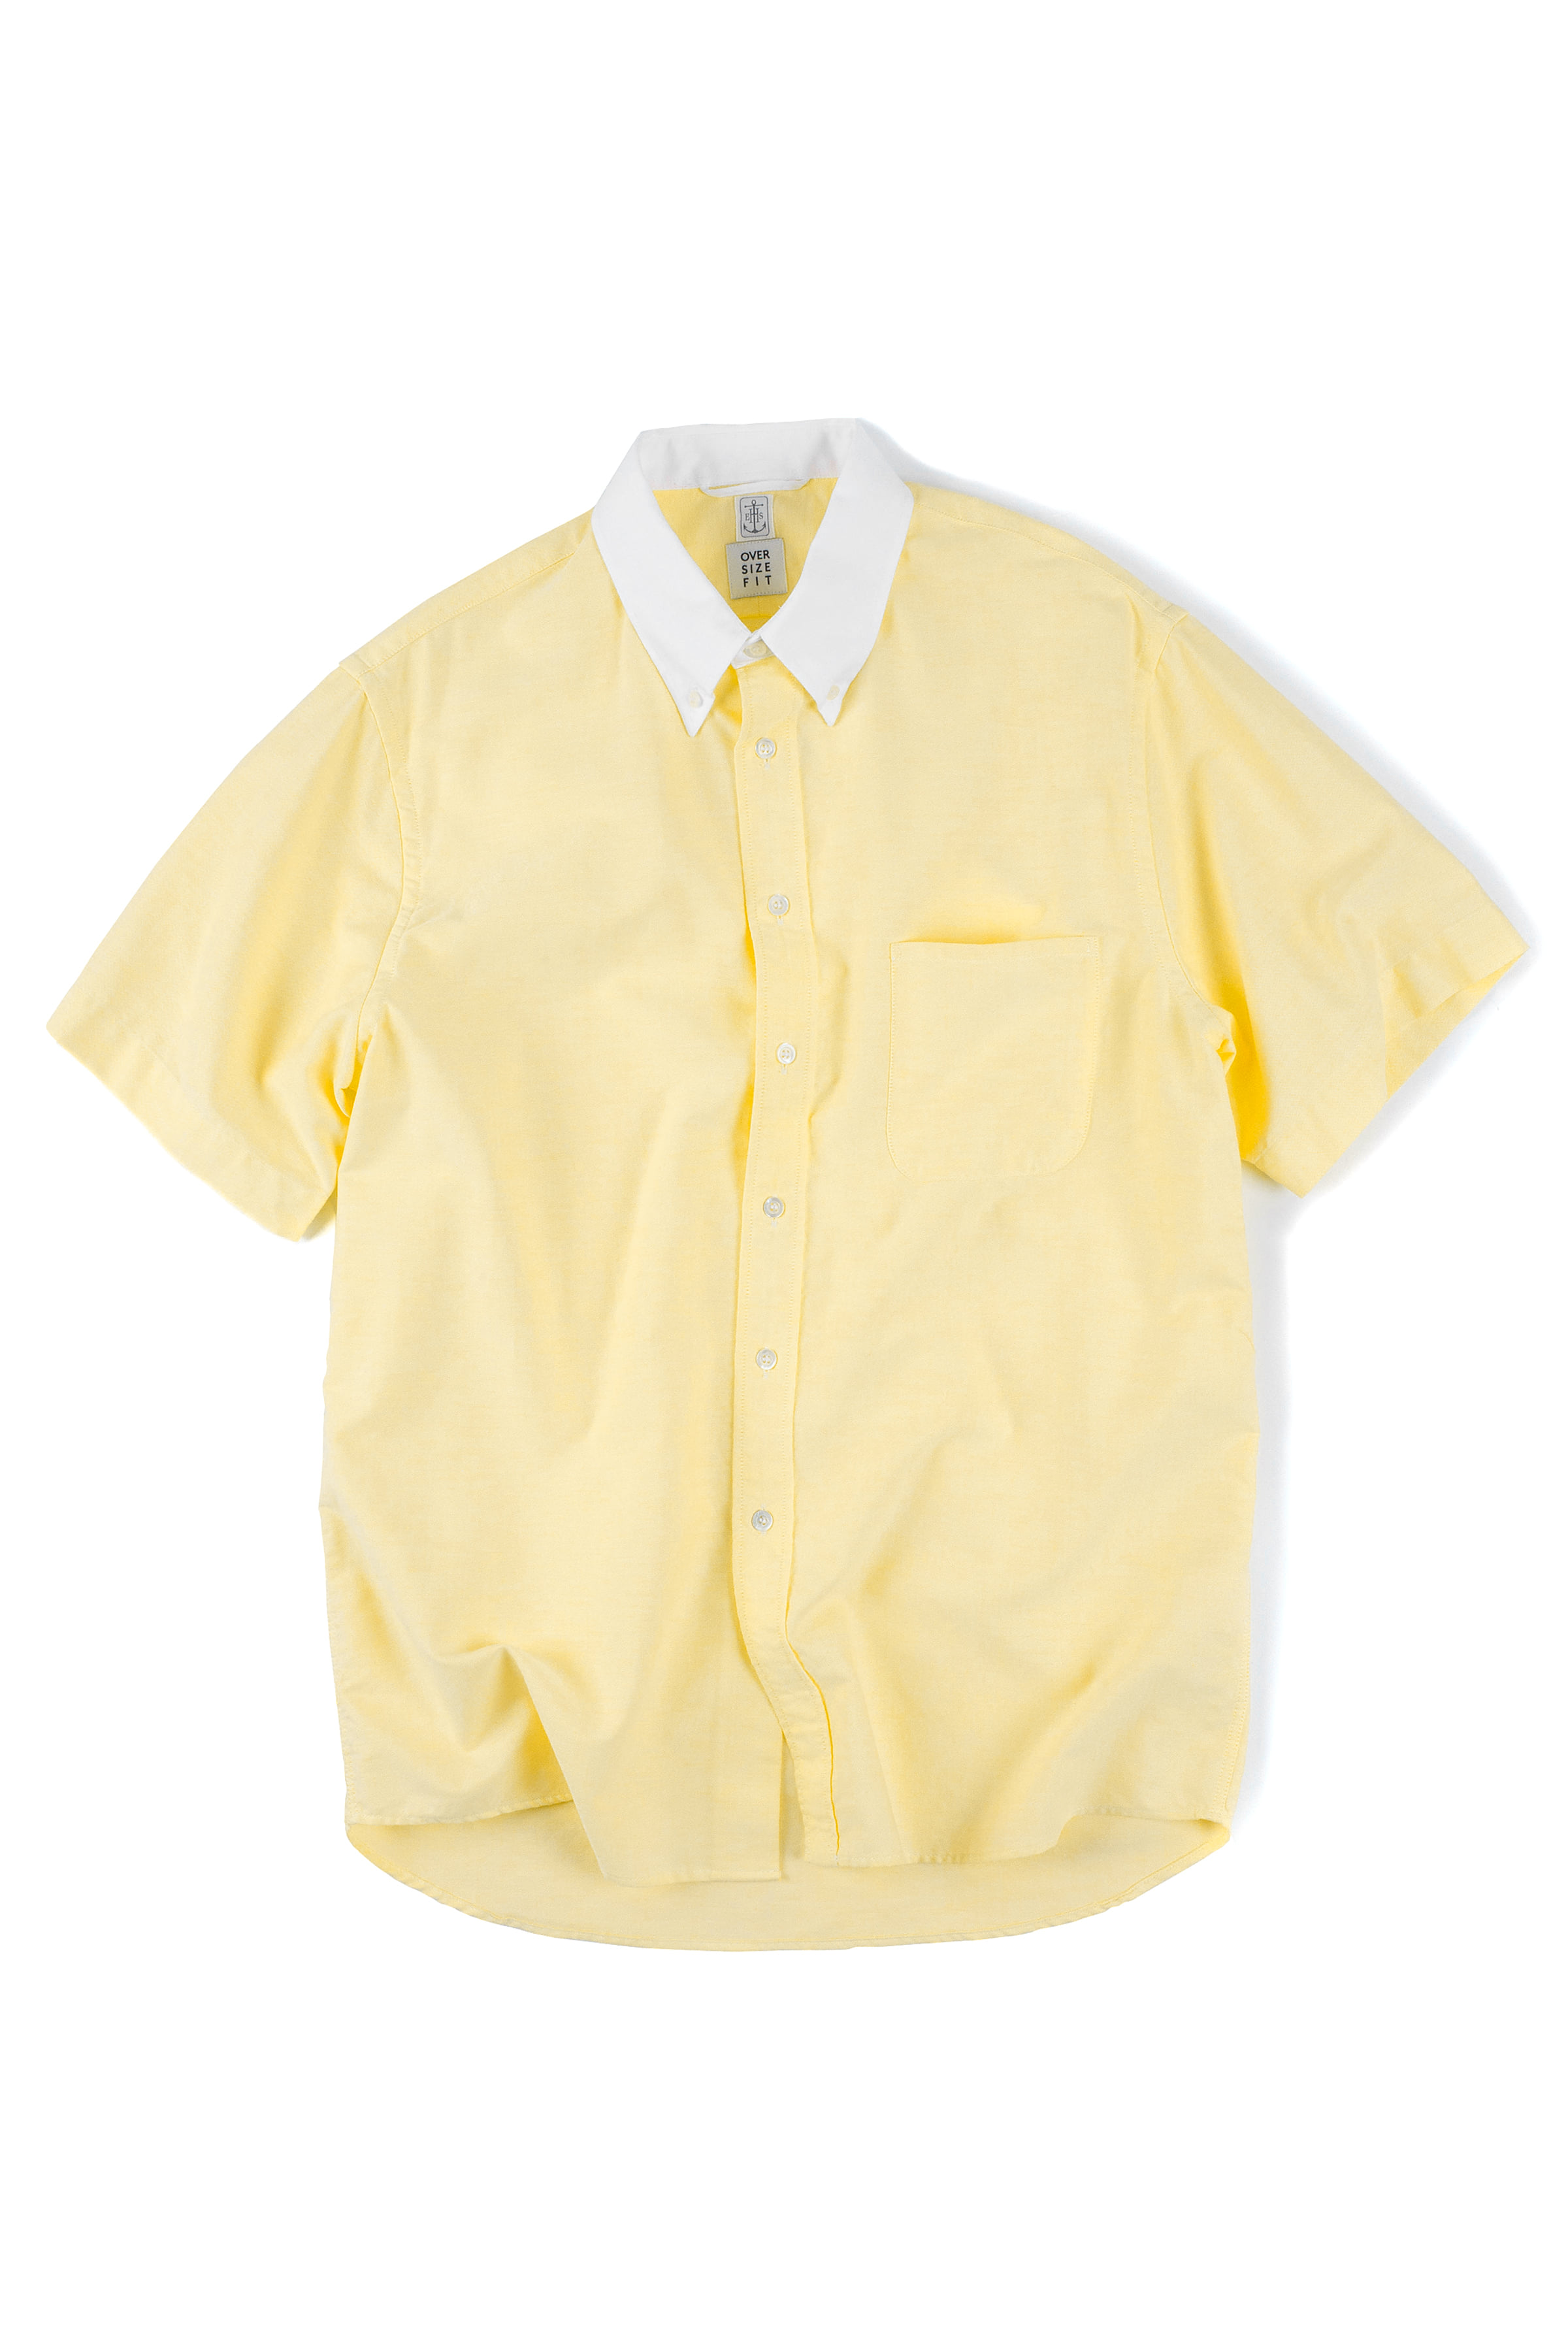 East Harbour Surplus : Campus Button Down Shirts (Yellow)